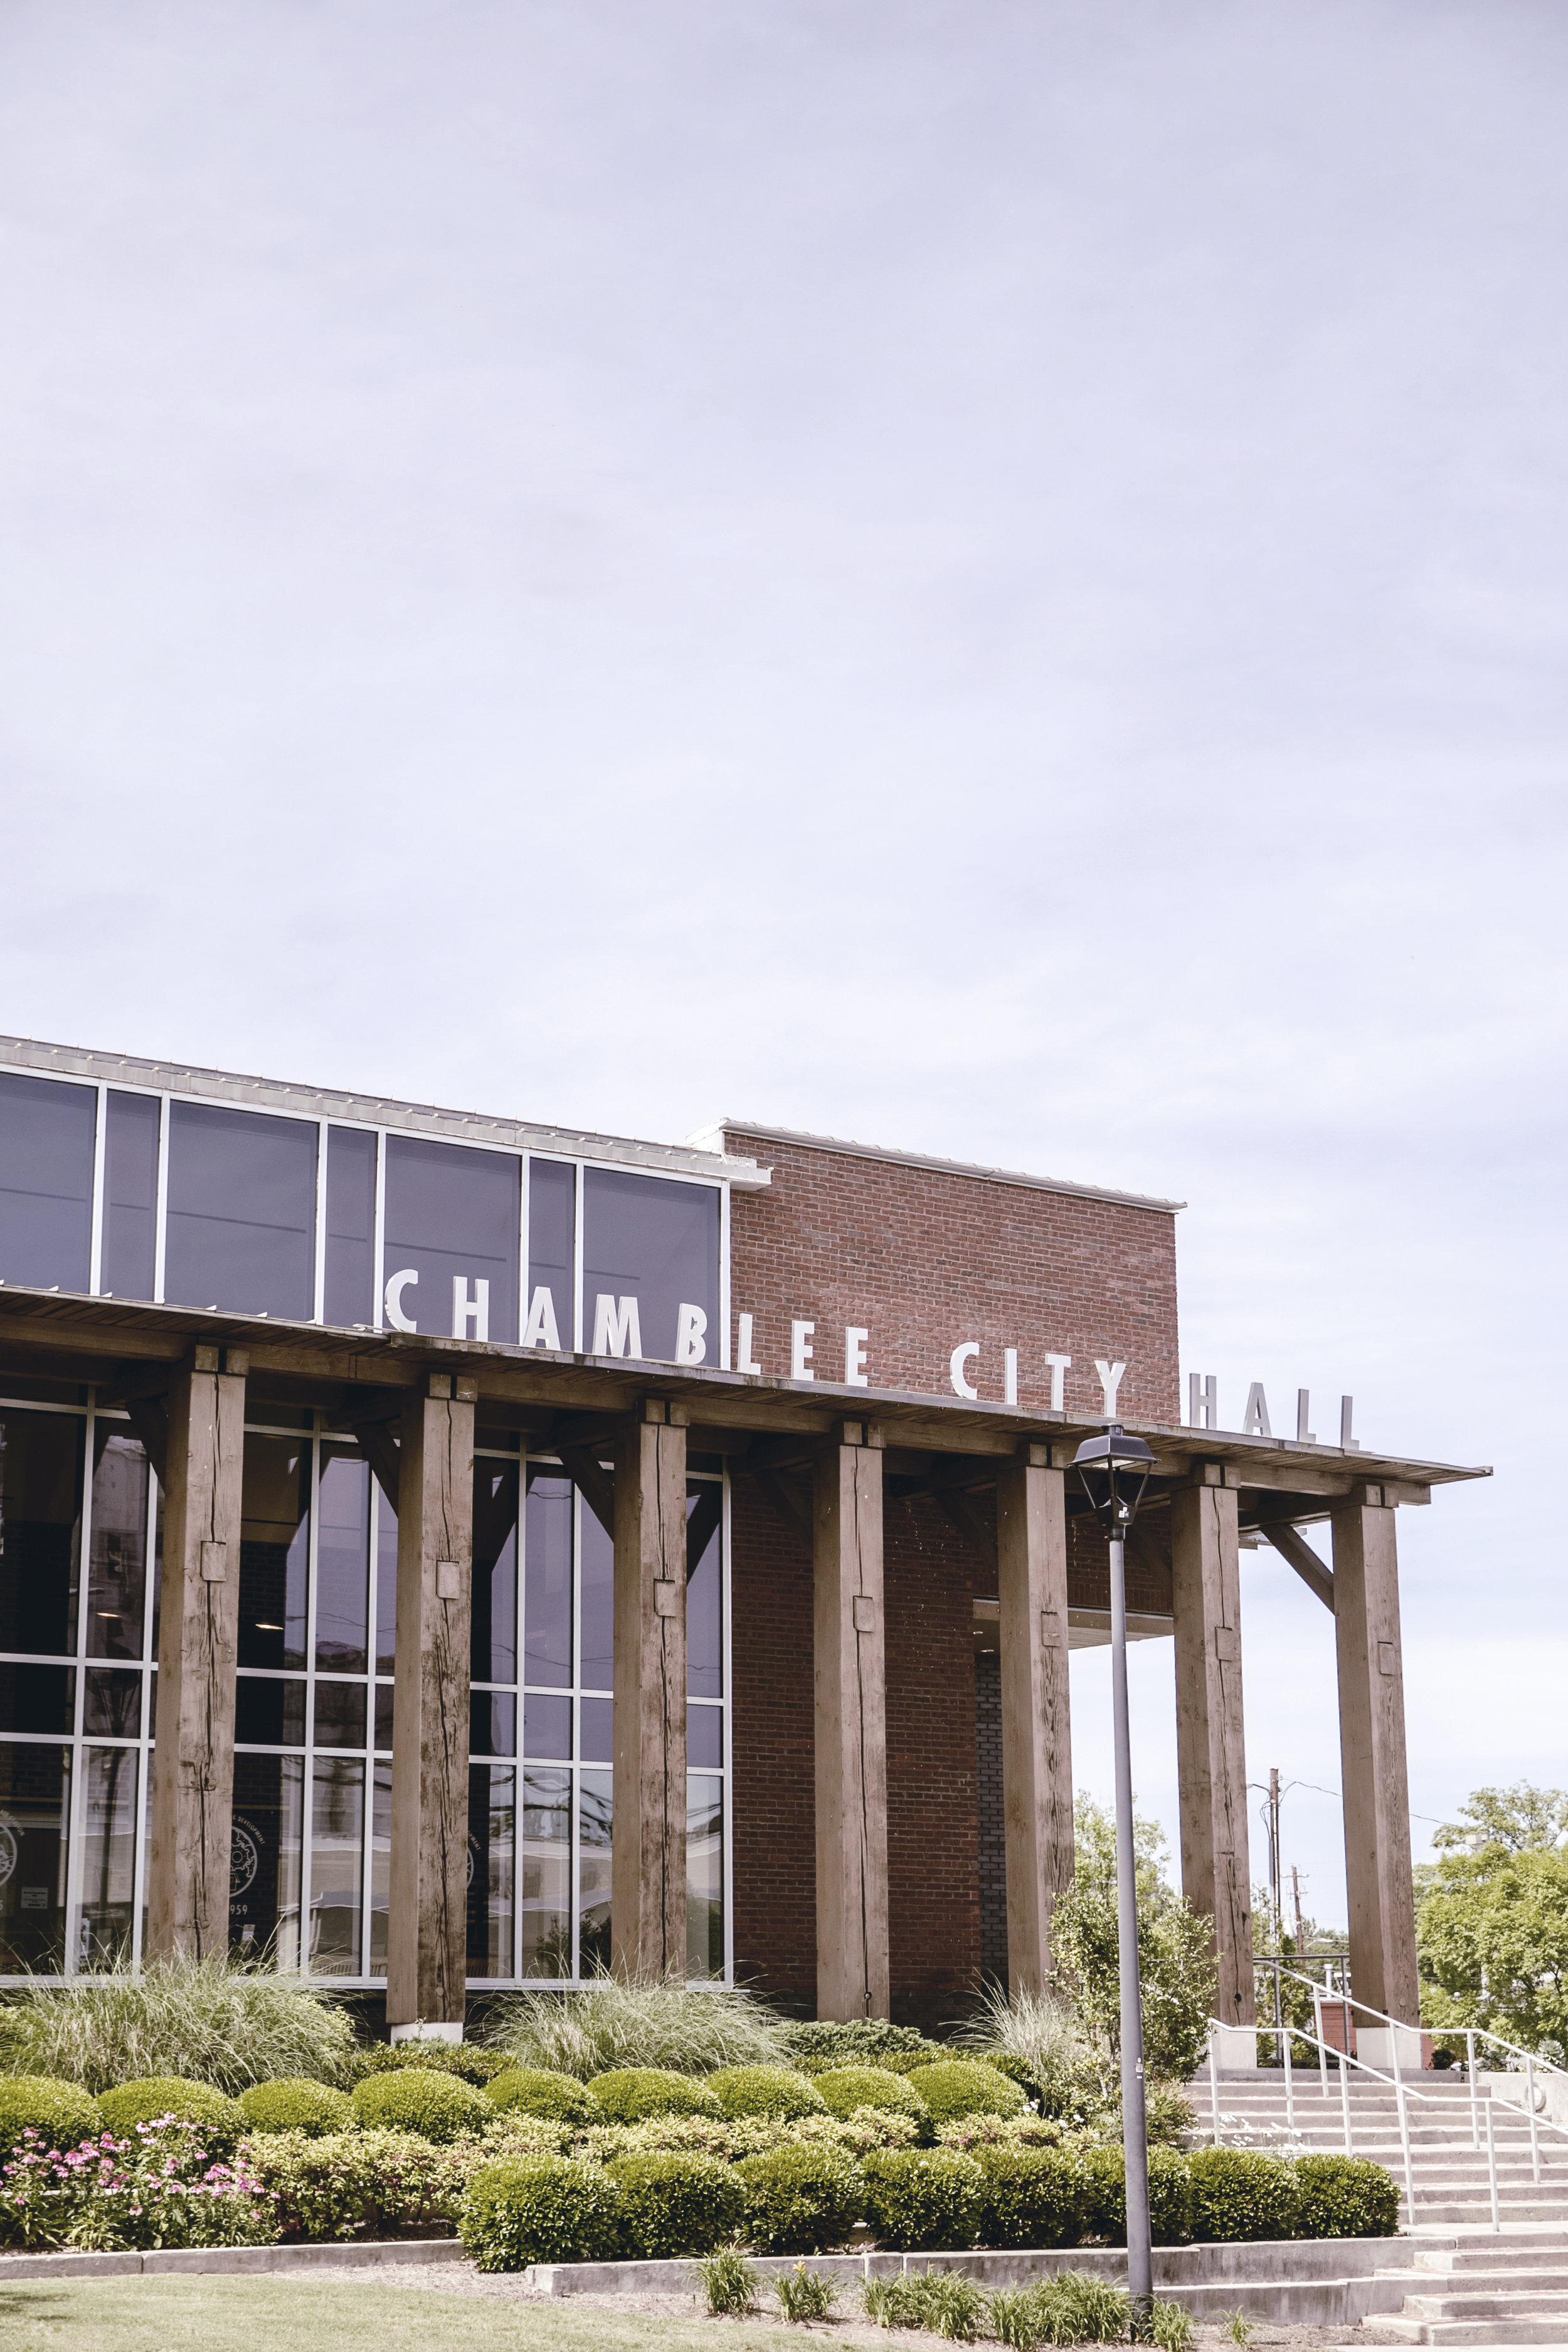 Chamblee Georgia City Hall / Small Town Squares / heirloomed